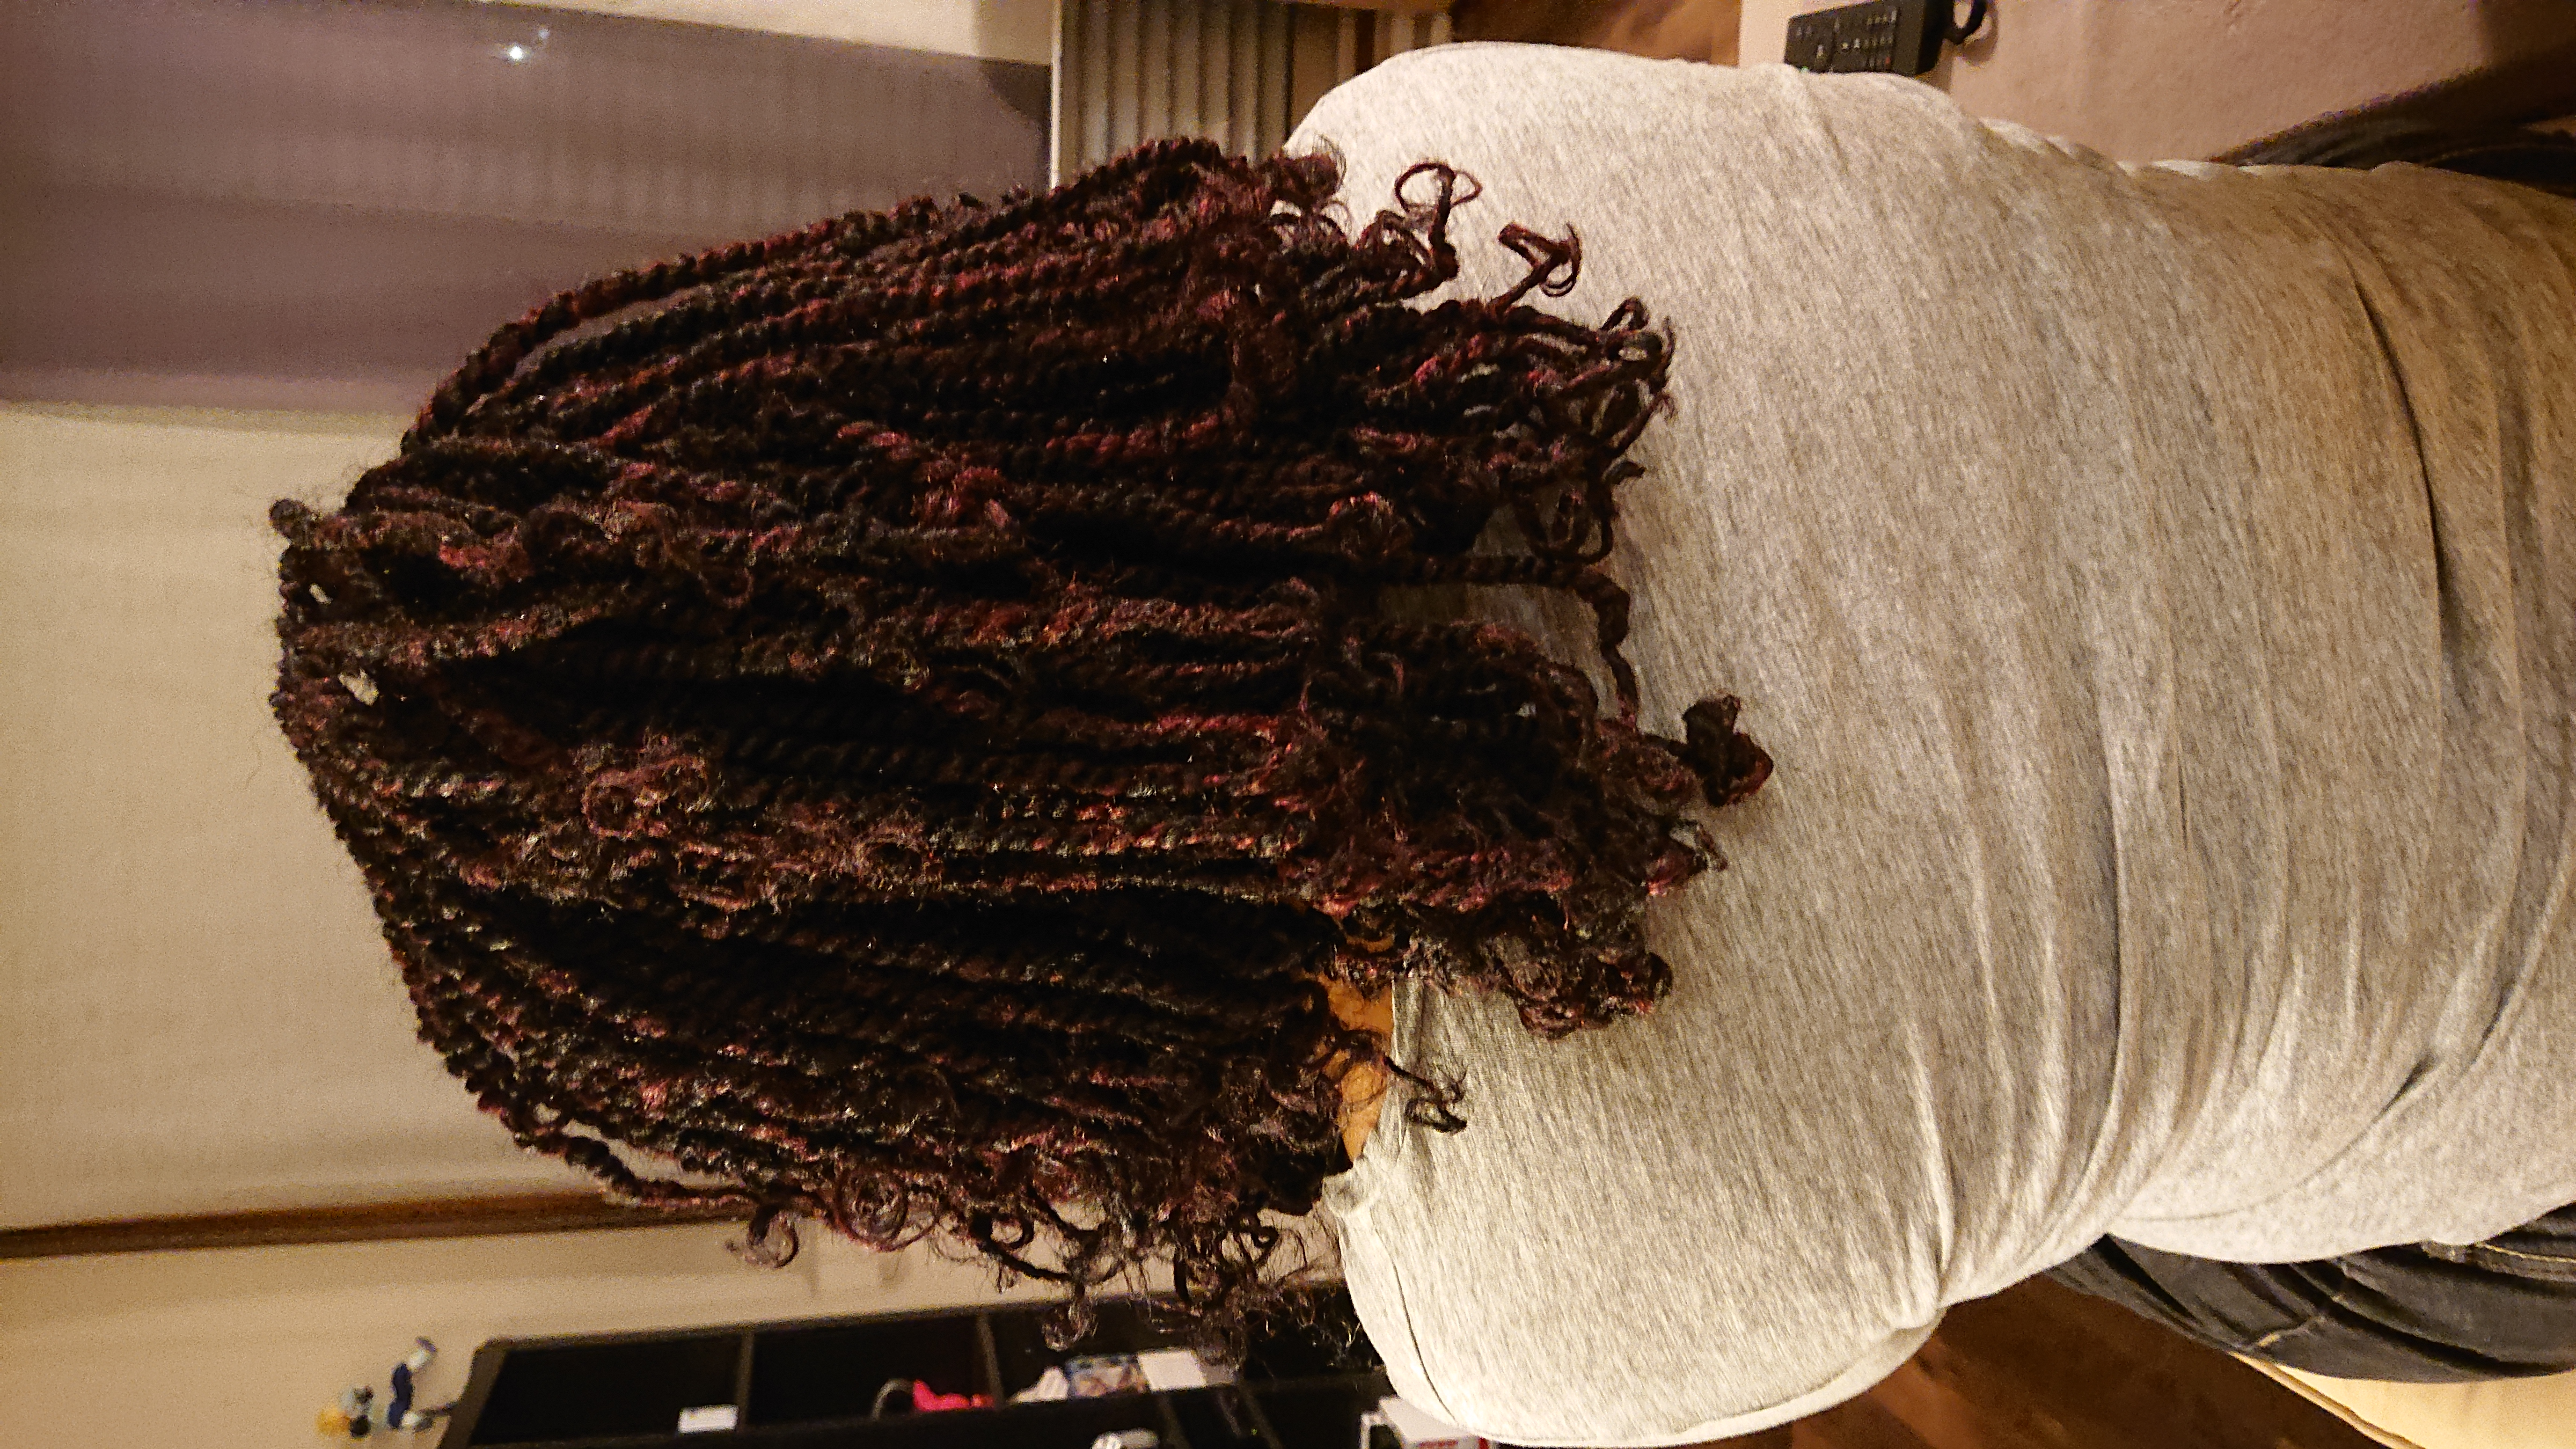 salon de coiffure afro tresse tresses box braids crochet braids vanilles tissages paris 75 77 78 91 92 93 94 95 EVUJAHNV